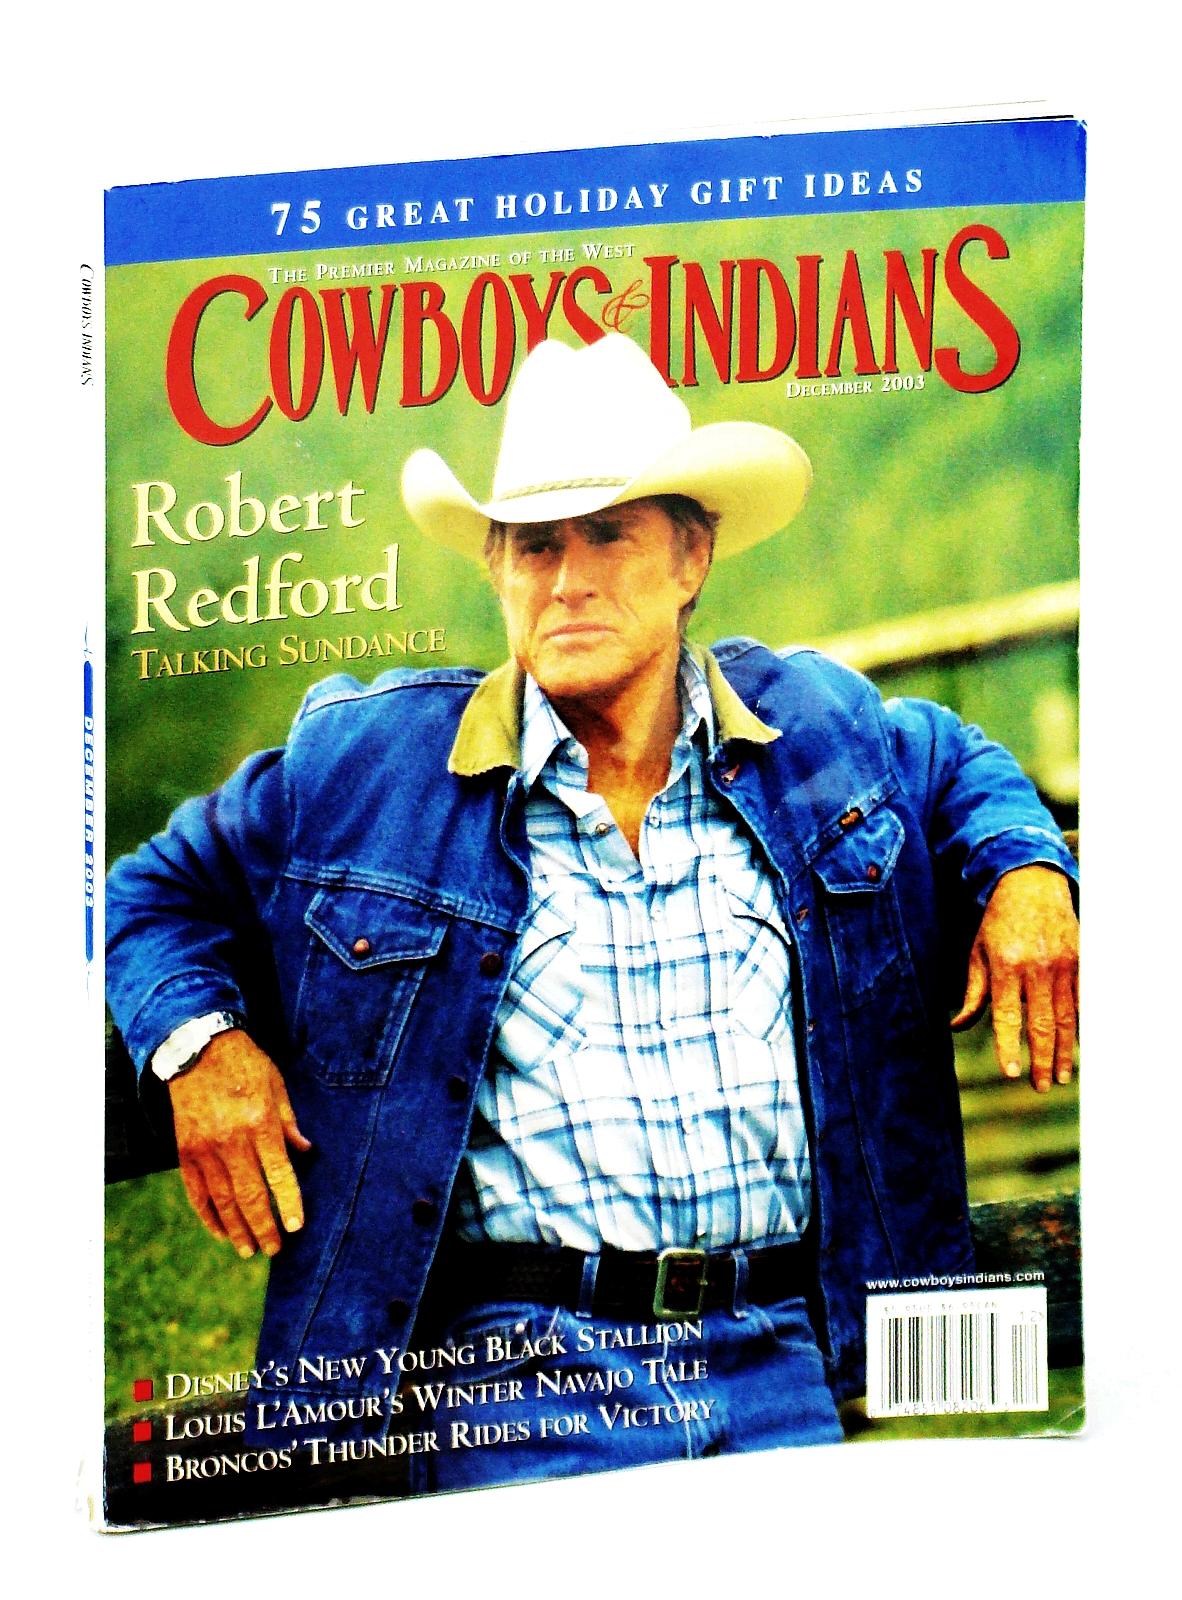 Image for COWBOYS & INDIANS magazine December 2003 (The Premier Magazine Of The West, www.cowboysindians.com, Volume 11 Number 8, 75 Great Holiday Gift Ideas, Robert Redford Talking Sundance, Disney's New Young Black Stallion, Louis L'Amour's Winter Navajo Tal